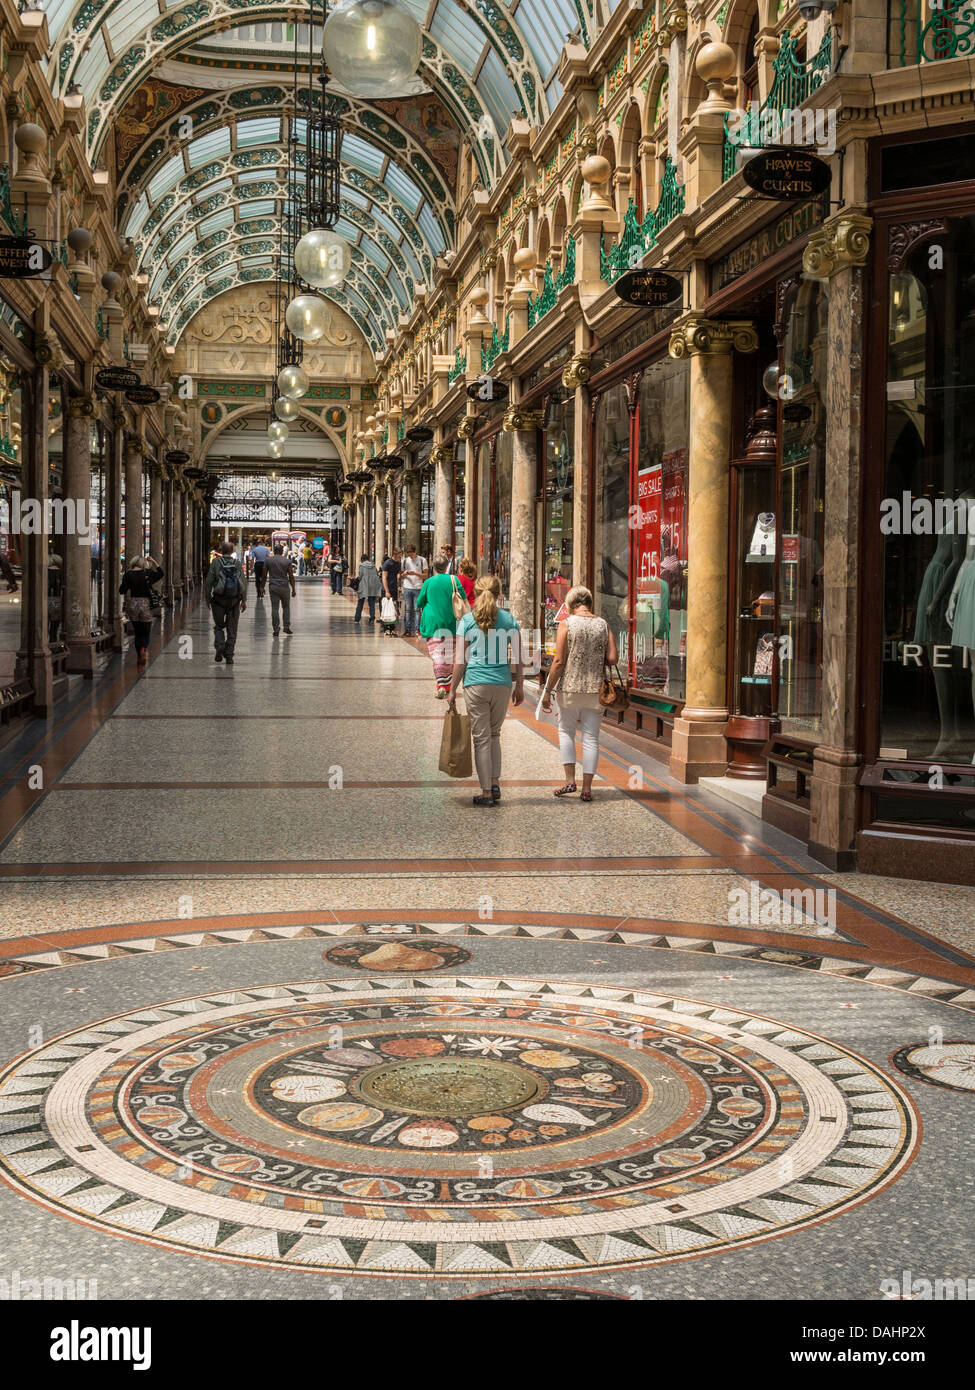 County Arcade in the Victoria Quarter Leeds UK - Stock Image